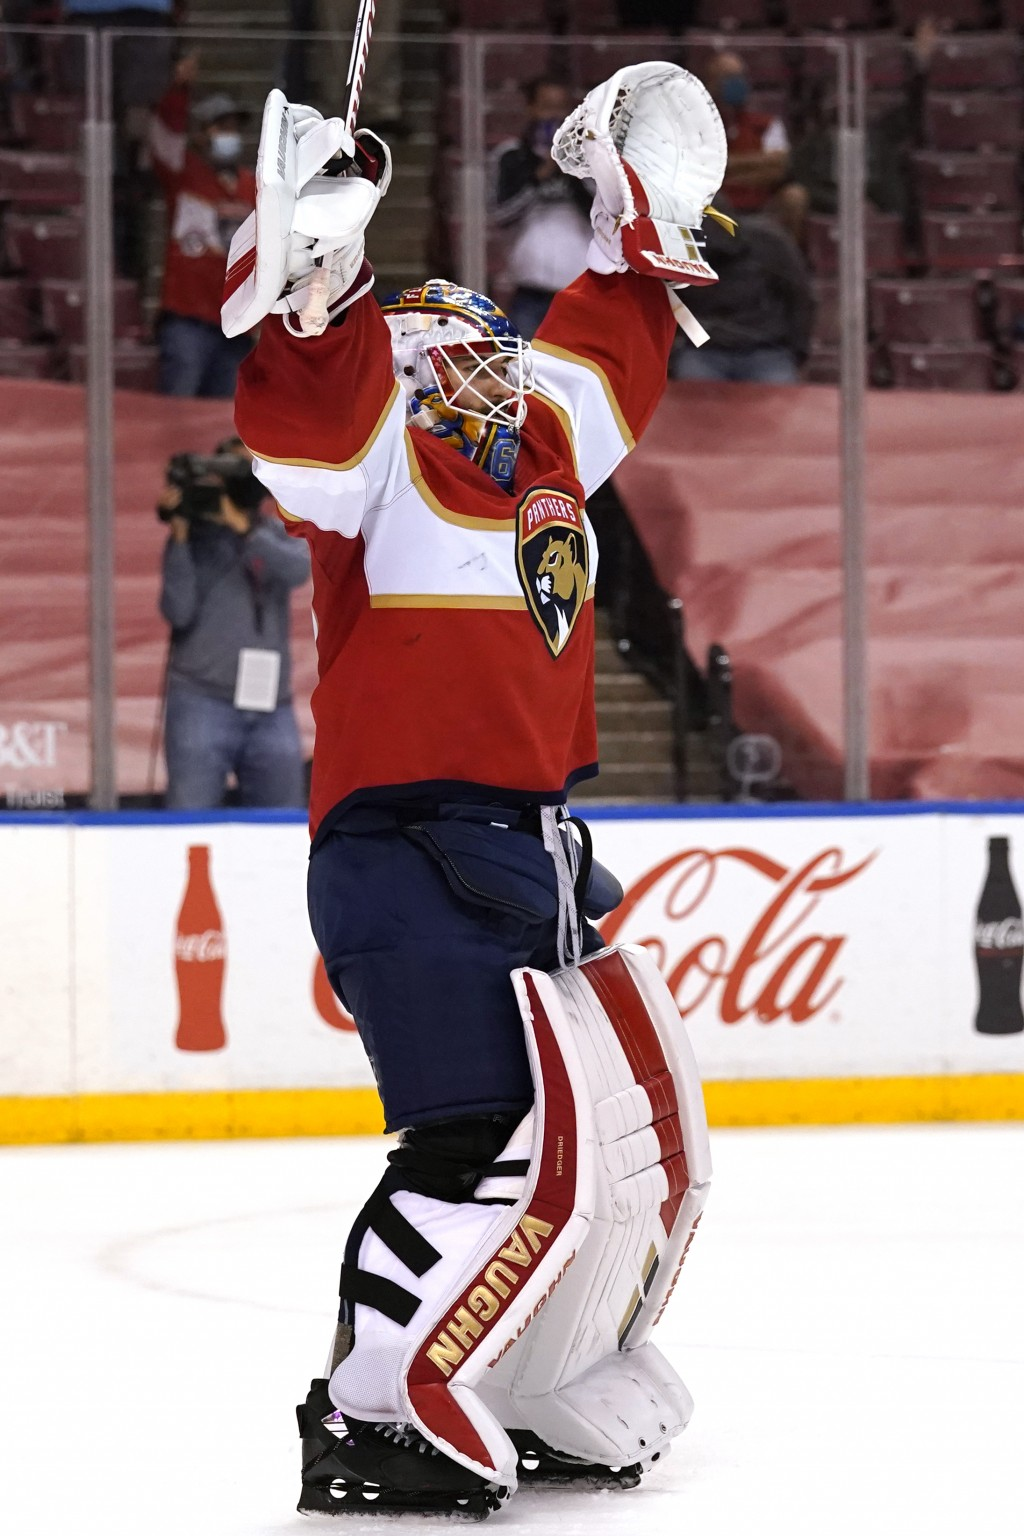 Florida Panthers goaltender Chris Driedger celebrates after an NHL hockey game against the Dallas Stars, Monday, Feb. 22, 2021, in Sunrise, Fla. The P...